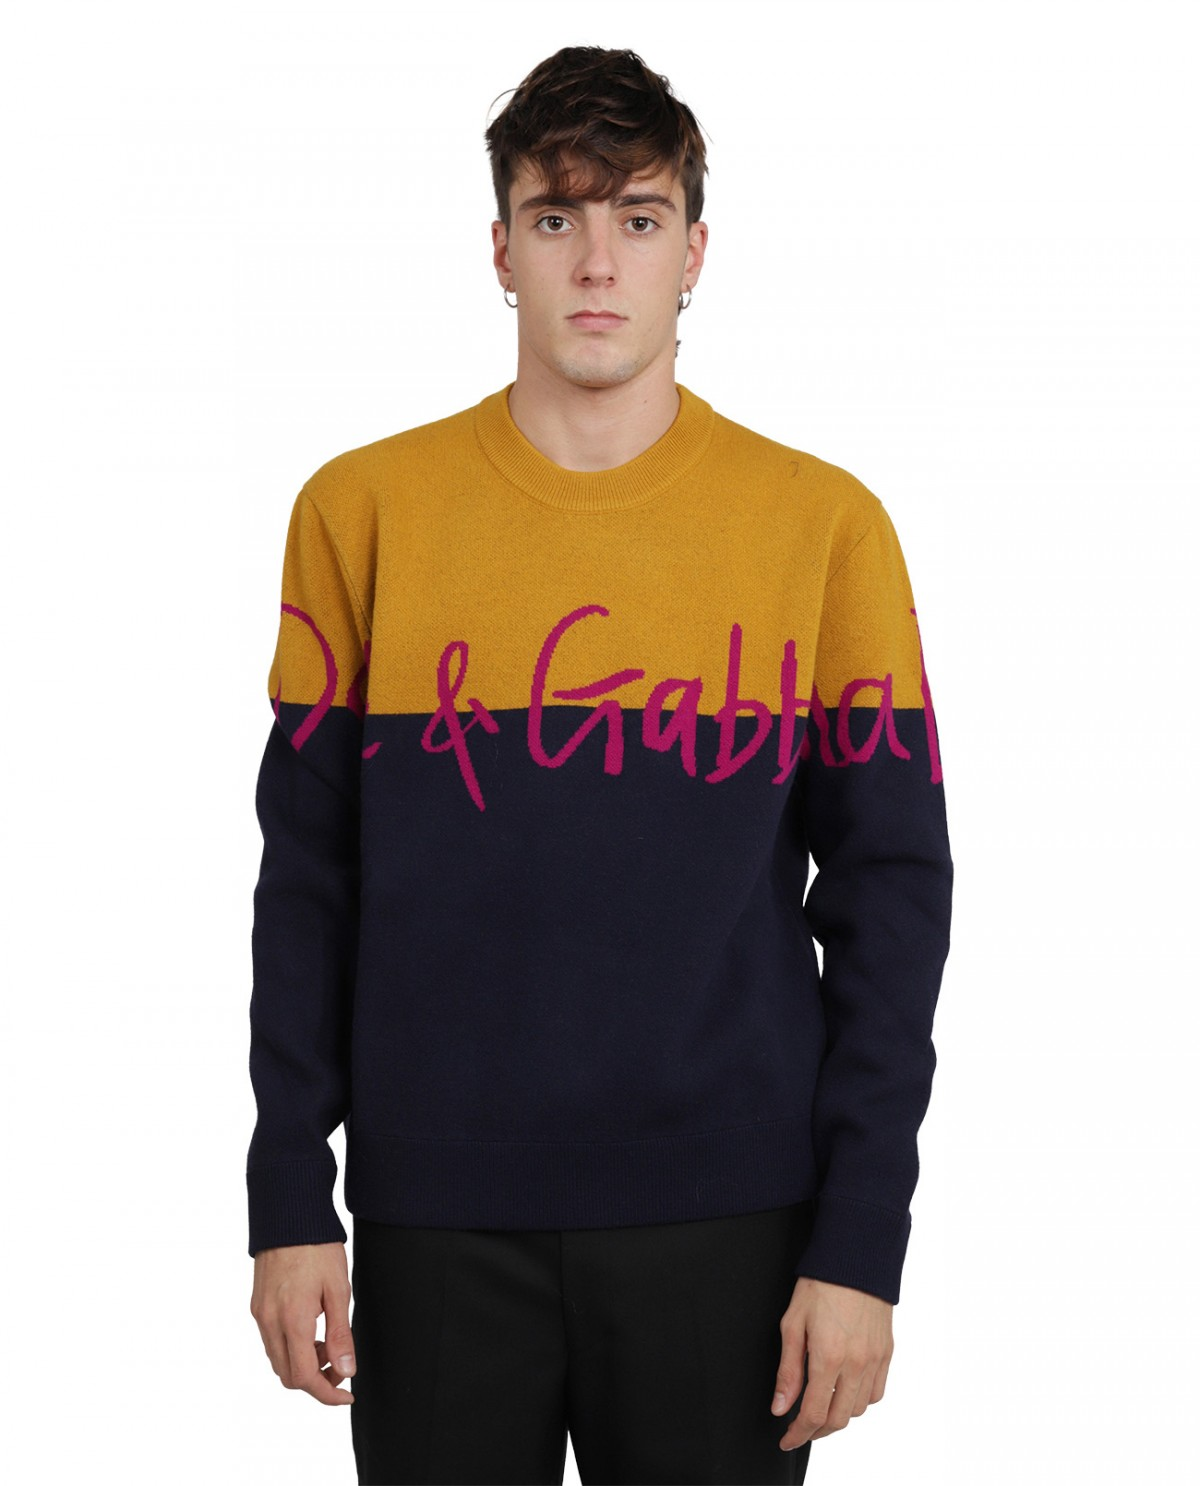 Polo Ralph Lauren white sweatshirt